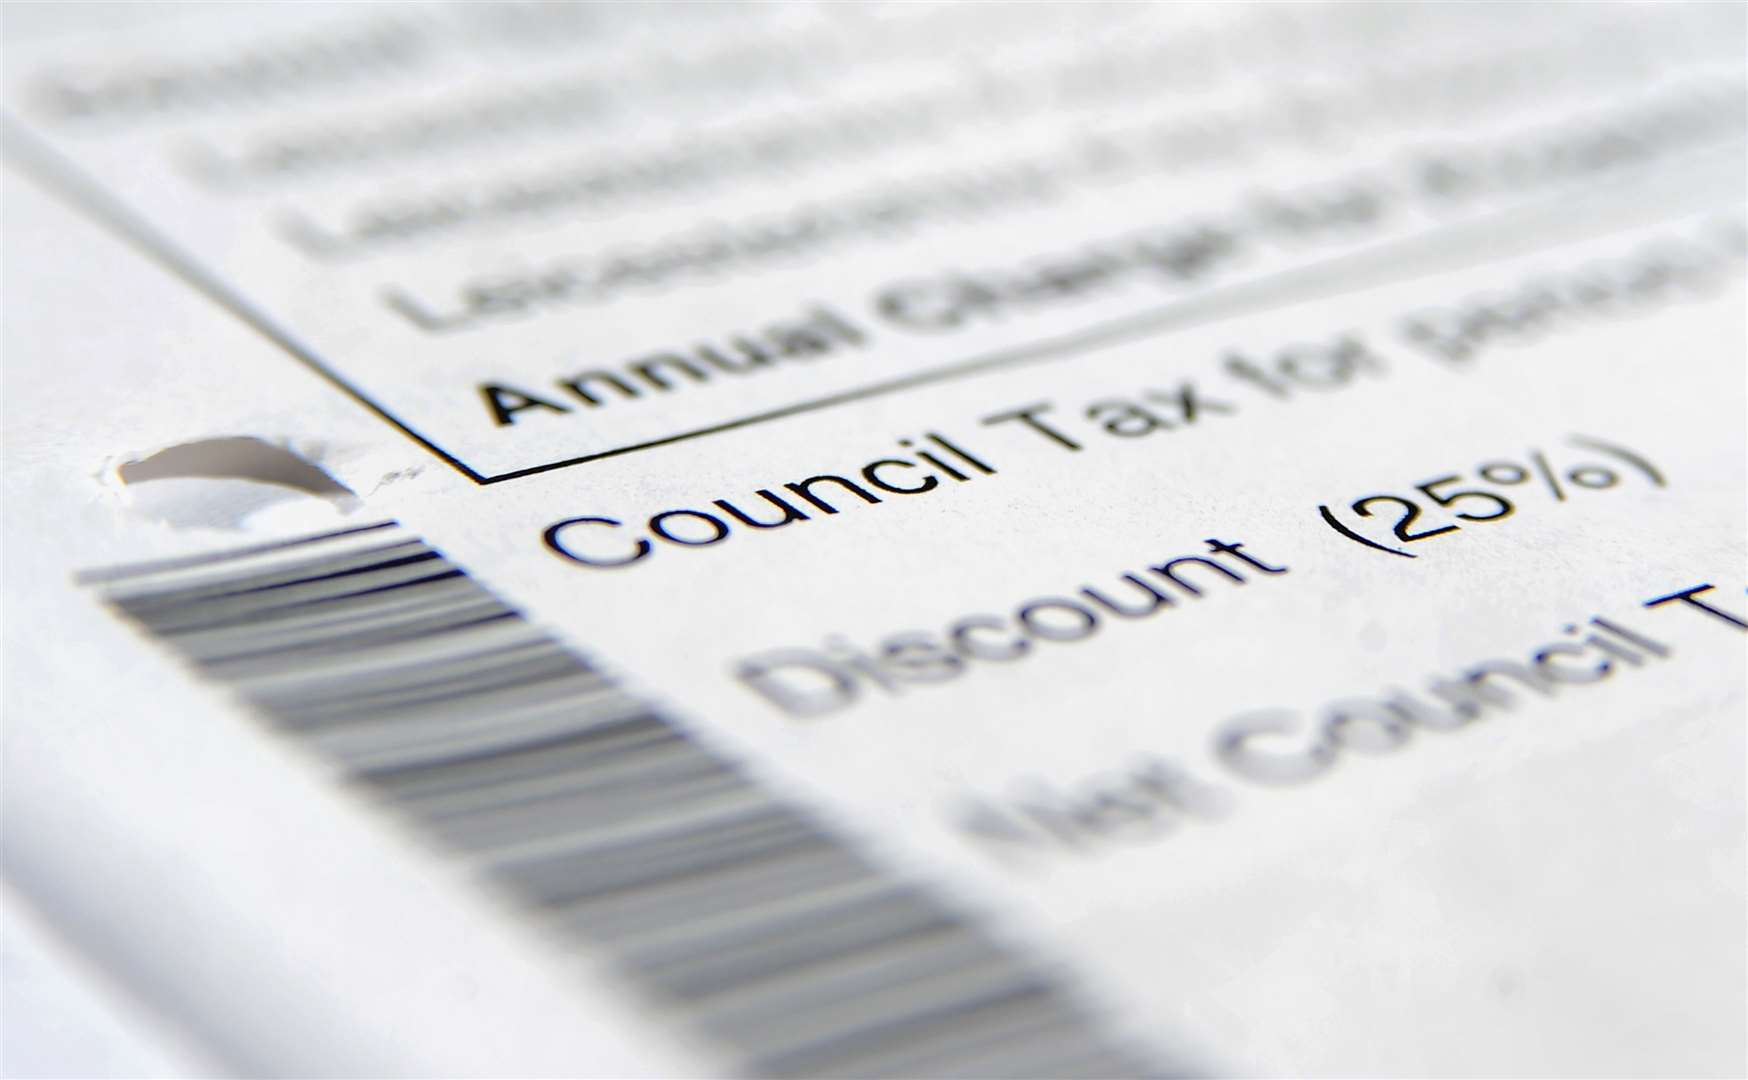 A long-overdue review of council tax bands is needed to help plug the £5 billion funding gap local authorities are facing, a committee of MPs has said. (15775107)